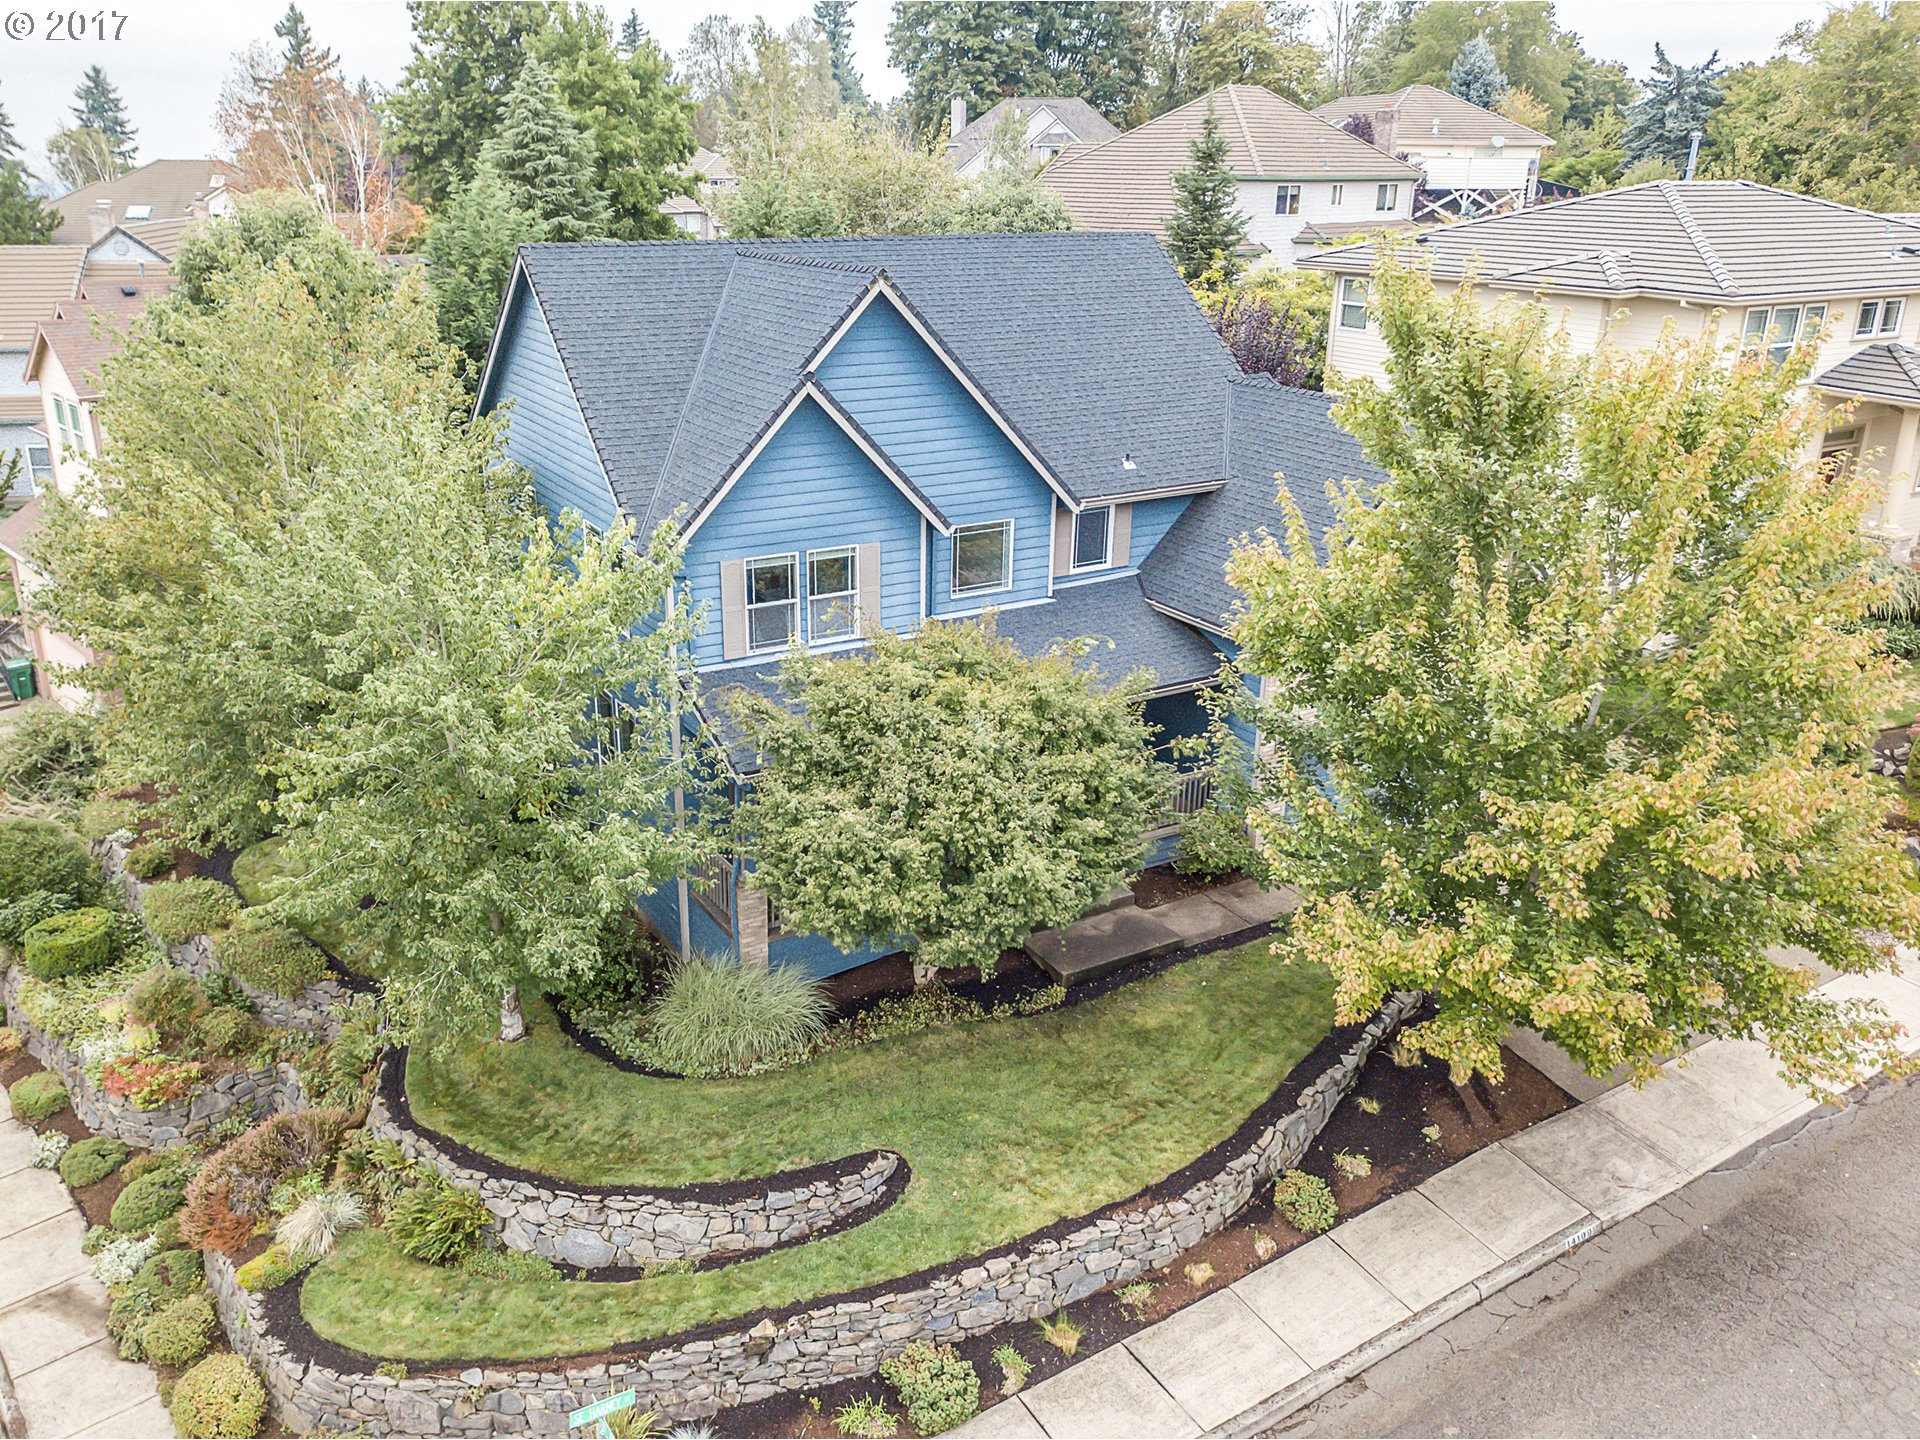 2601 sq. ft 4 bedrooms 2 bathrooms  House For Sale, Portland, OR